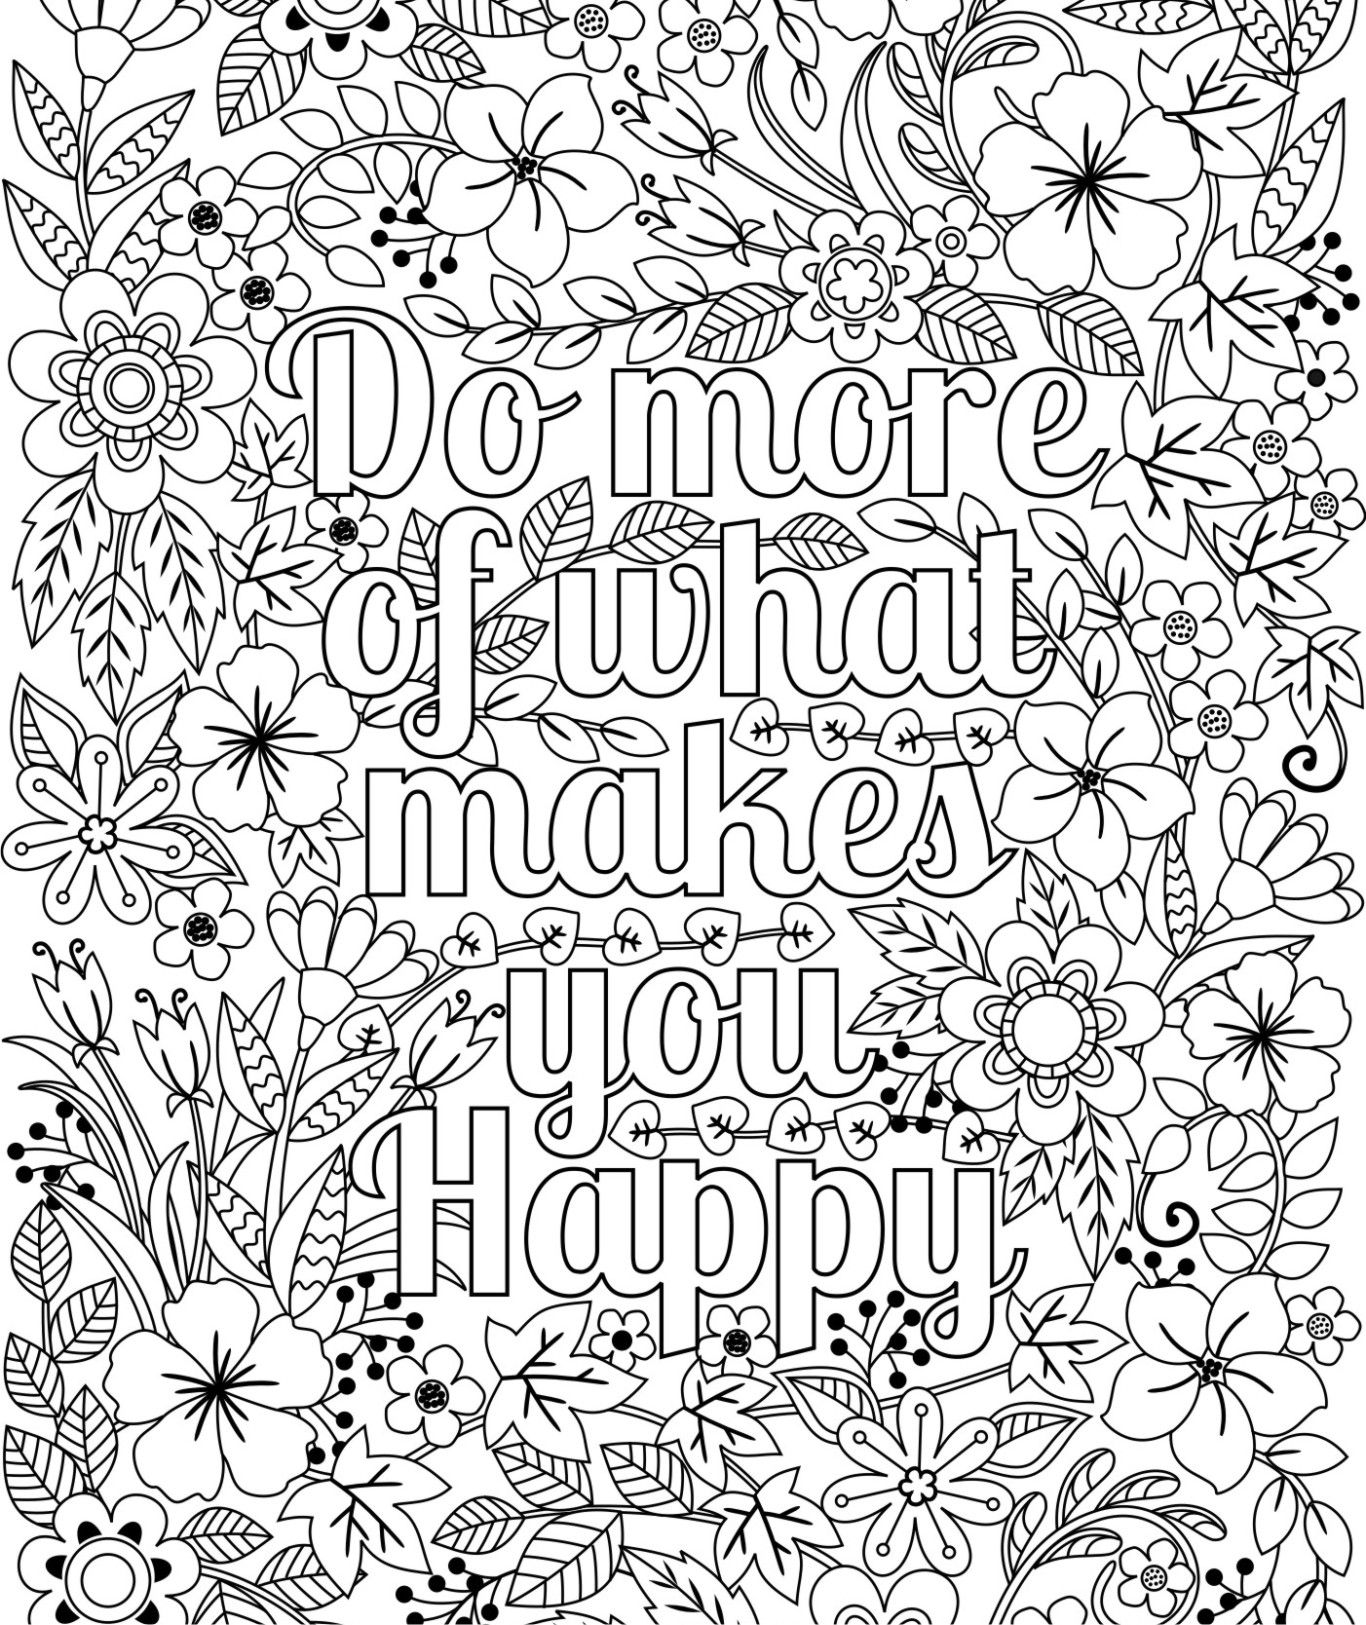 Do More of What Makes You Happy - Coloring Page for Kids ...